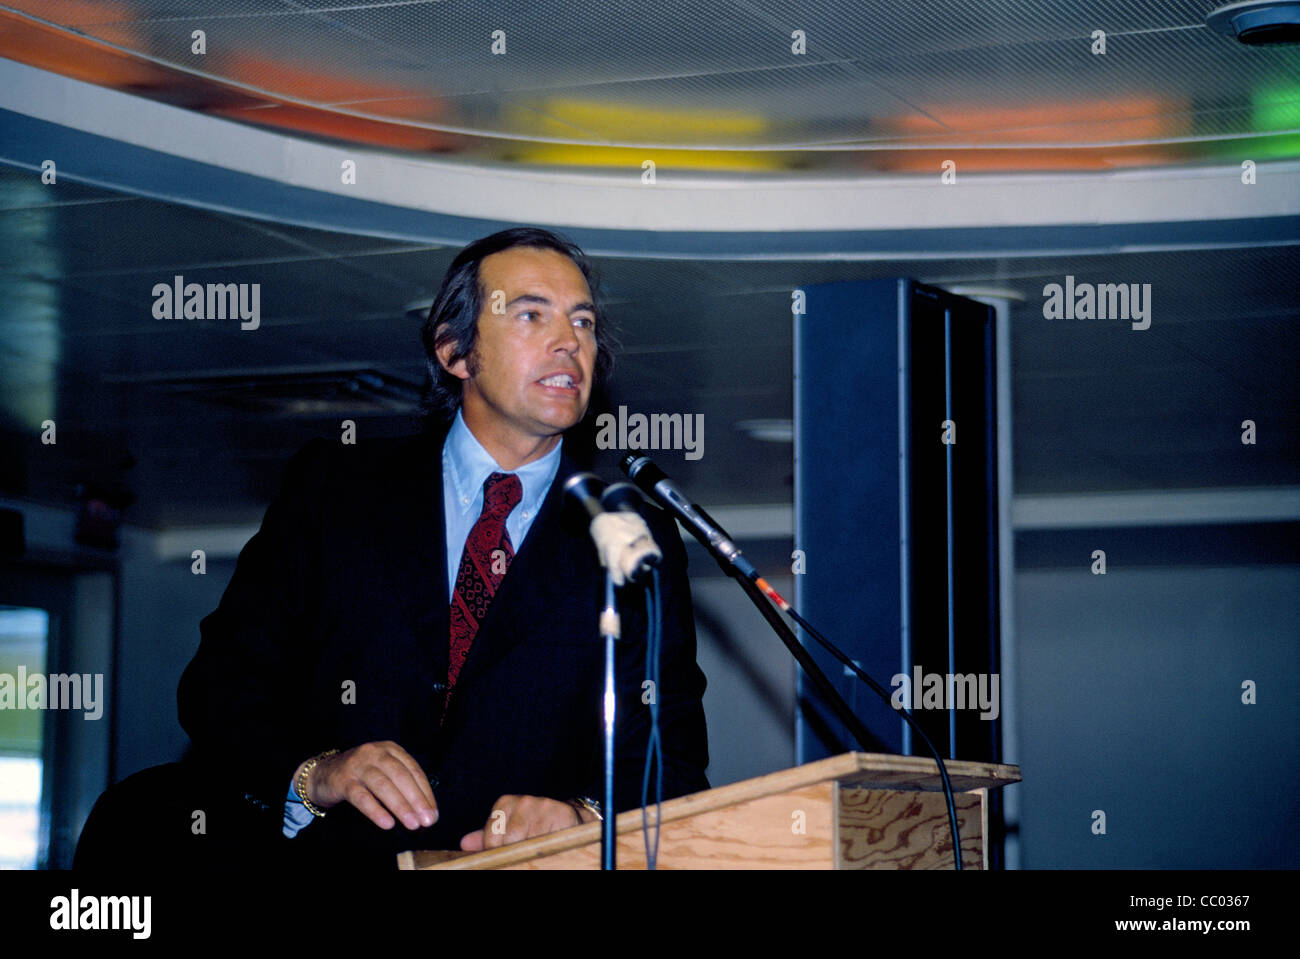 Dr. Christiaan Barnard, famous for doing the first human heart transplant in 1967, speaks to an audience of doctors - Stock Image